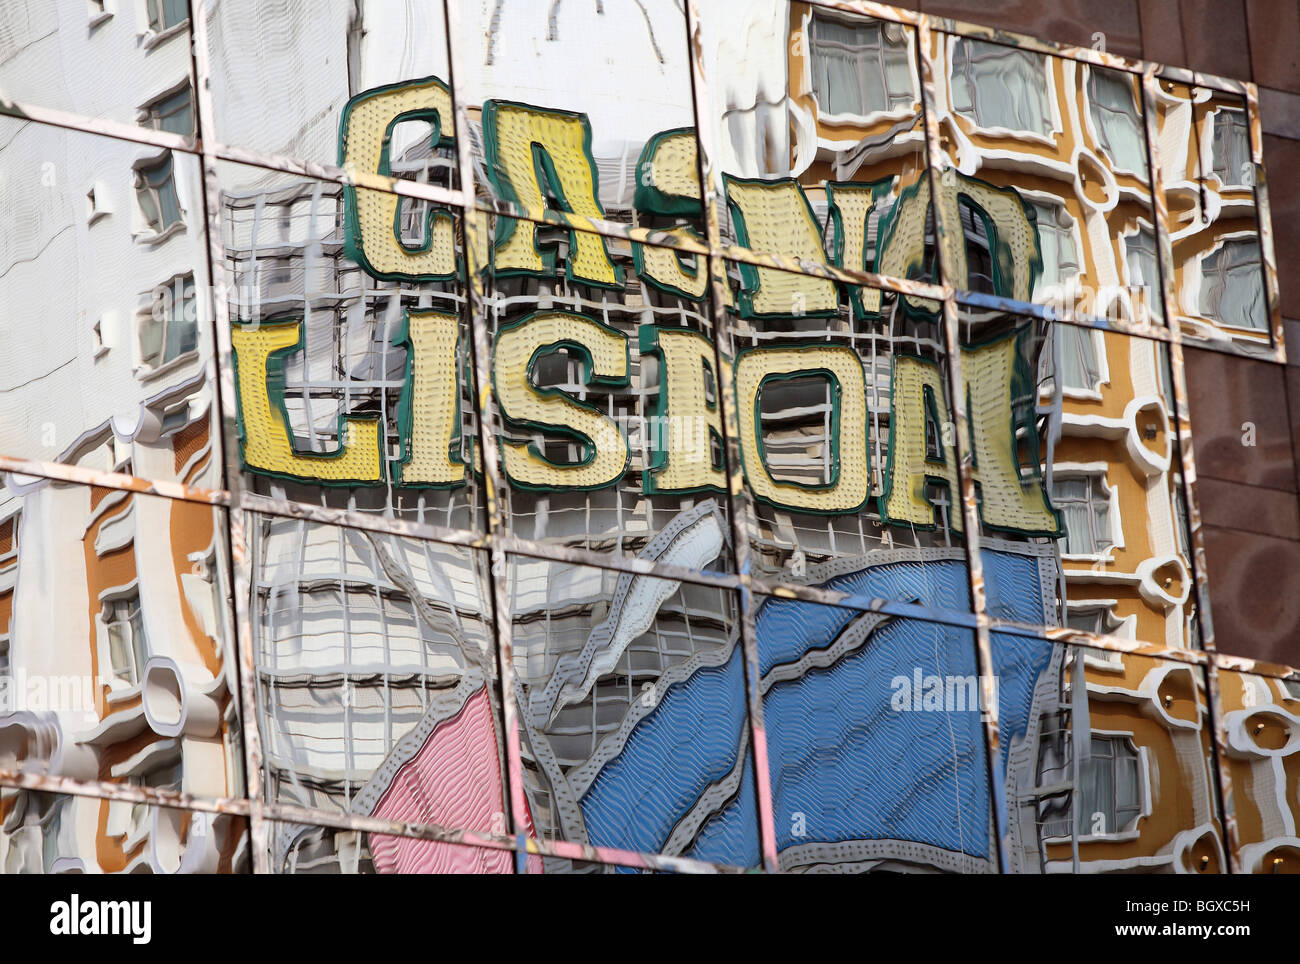 Lettering of Casino Lisboa reflected on windows, Macao, China - Stock Image